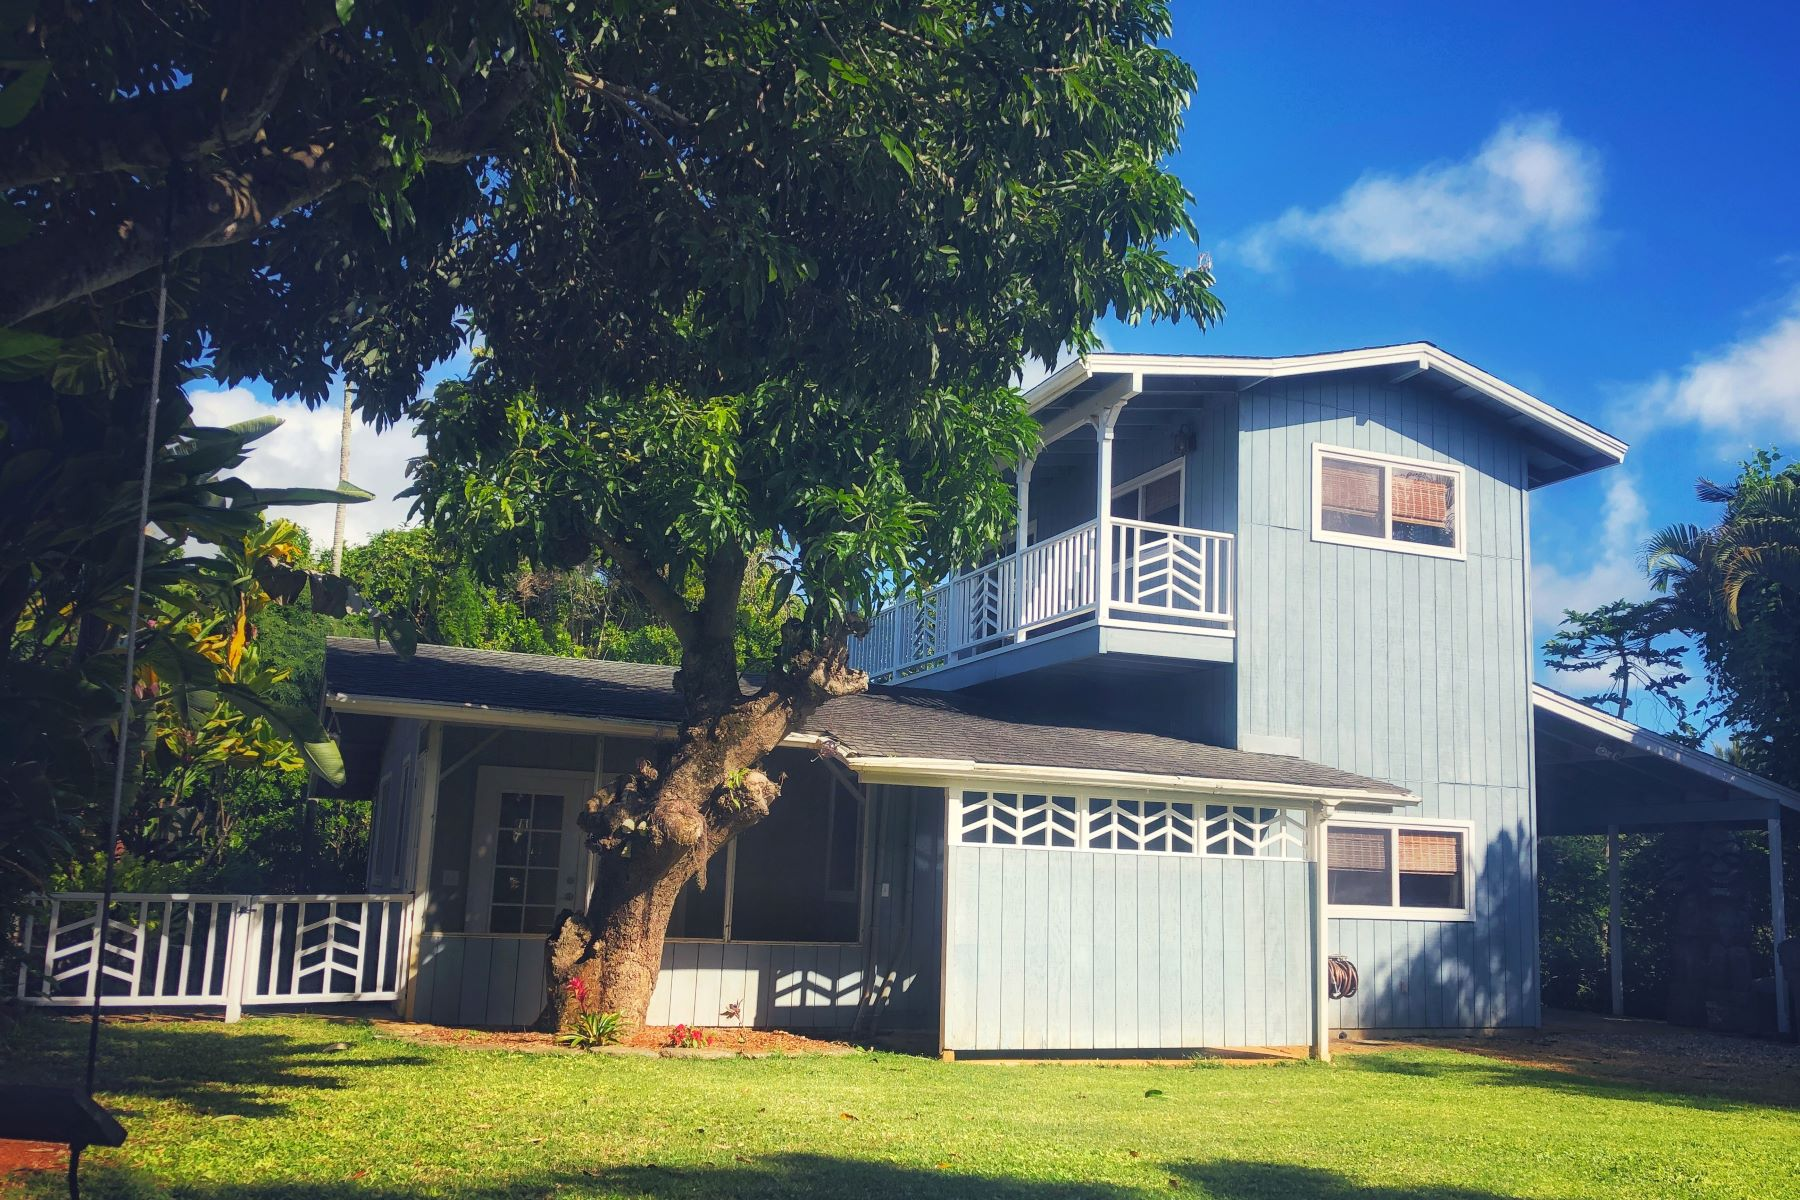 Single Family Homes for Active at Cute House 1720-B Kaehulua Place Kapaa, Hawaii 96746 United States